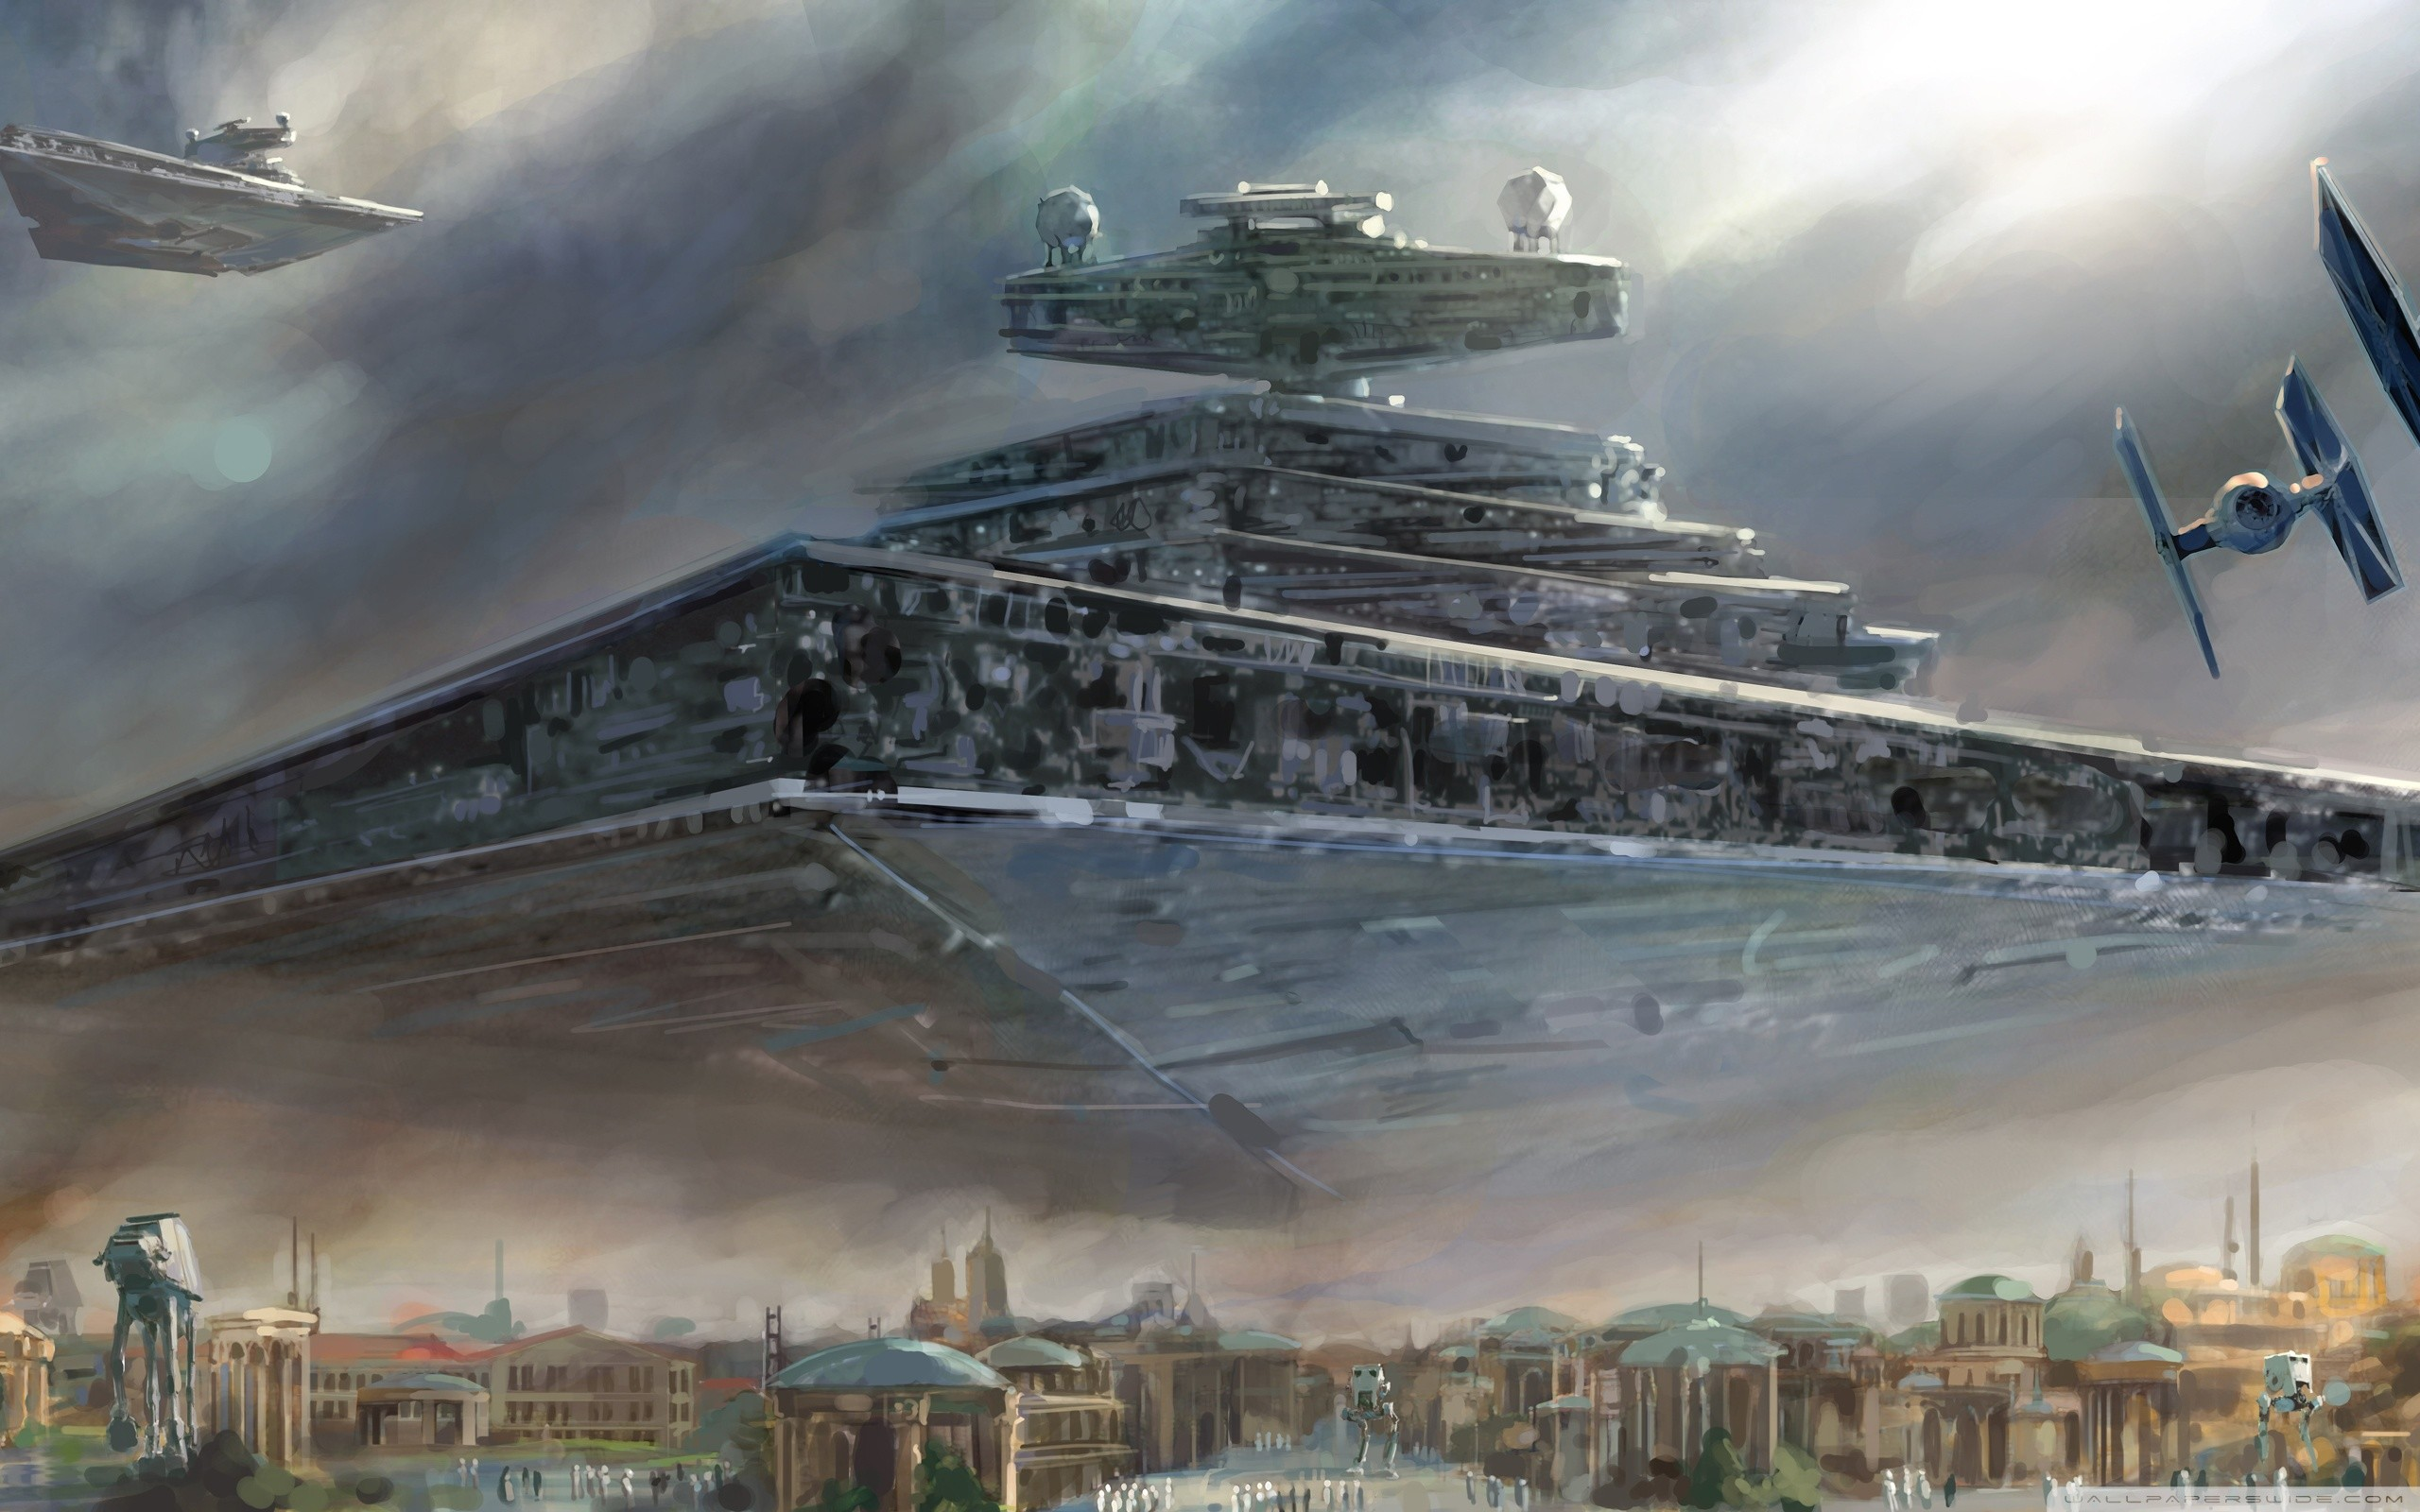 star wars sci fi essay Sequart organization is going sci-fi in a big way with the success of our star trek book, we're proud to announce that work has commenced on three star wars books and two planet of the apes books over the next three years, we will release essay anthologies analyzing all aspects of the star.